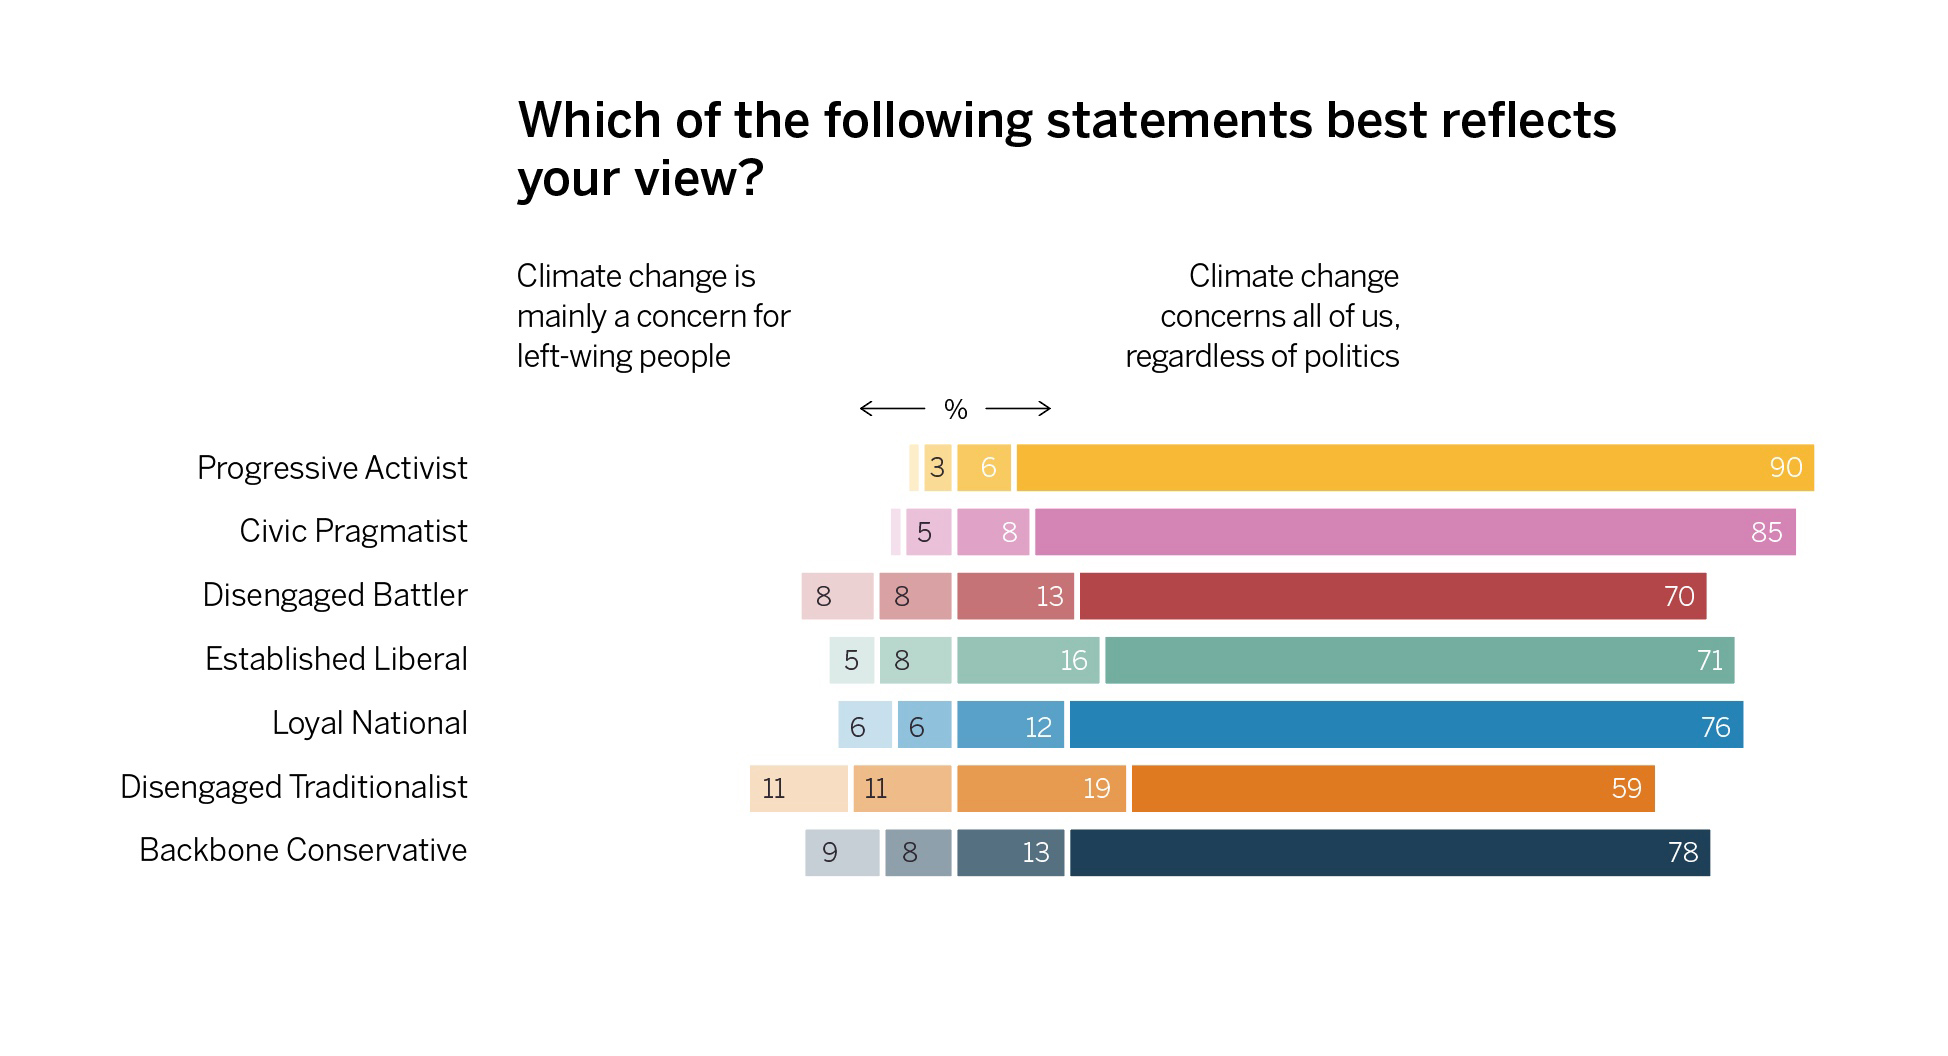 The percentage of people who believe climate change is an issue for left wing people, or for everyone